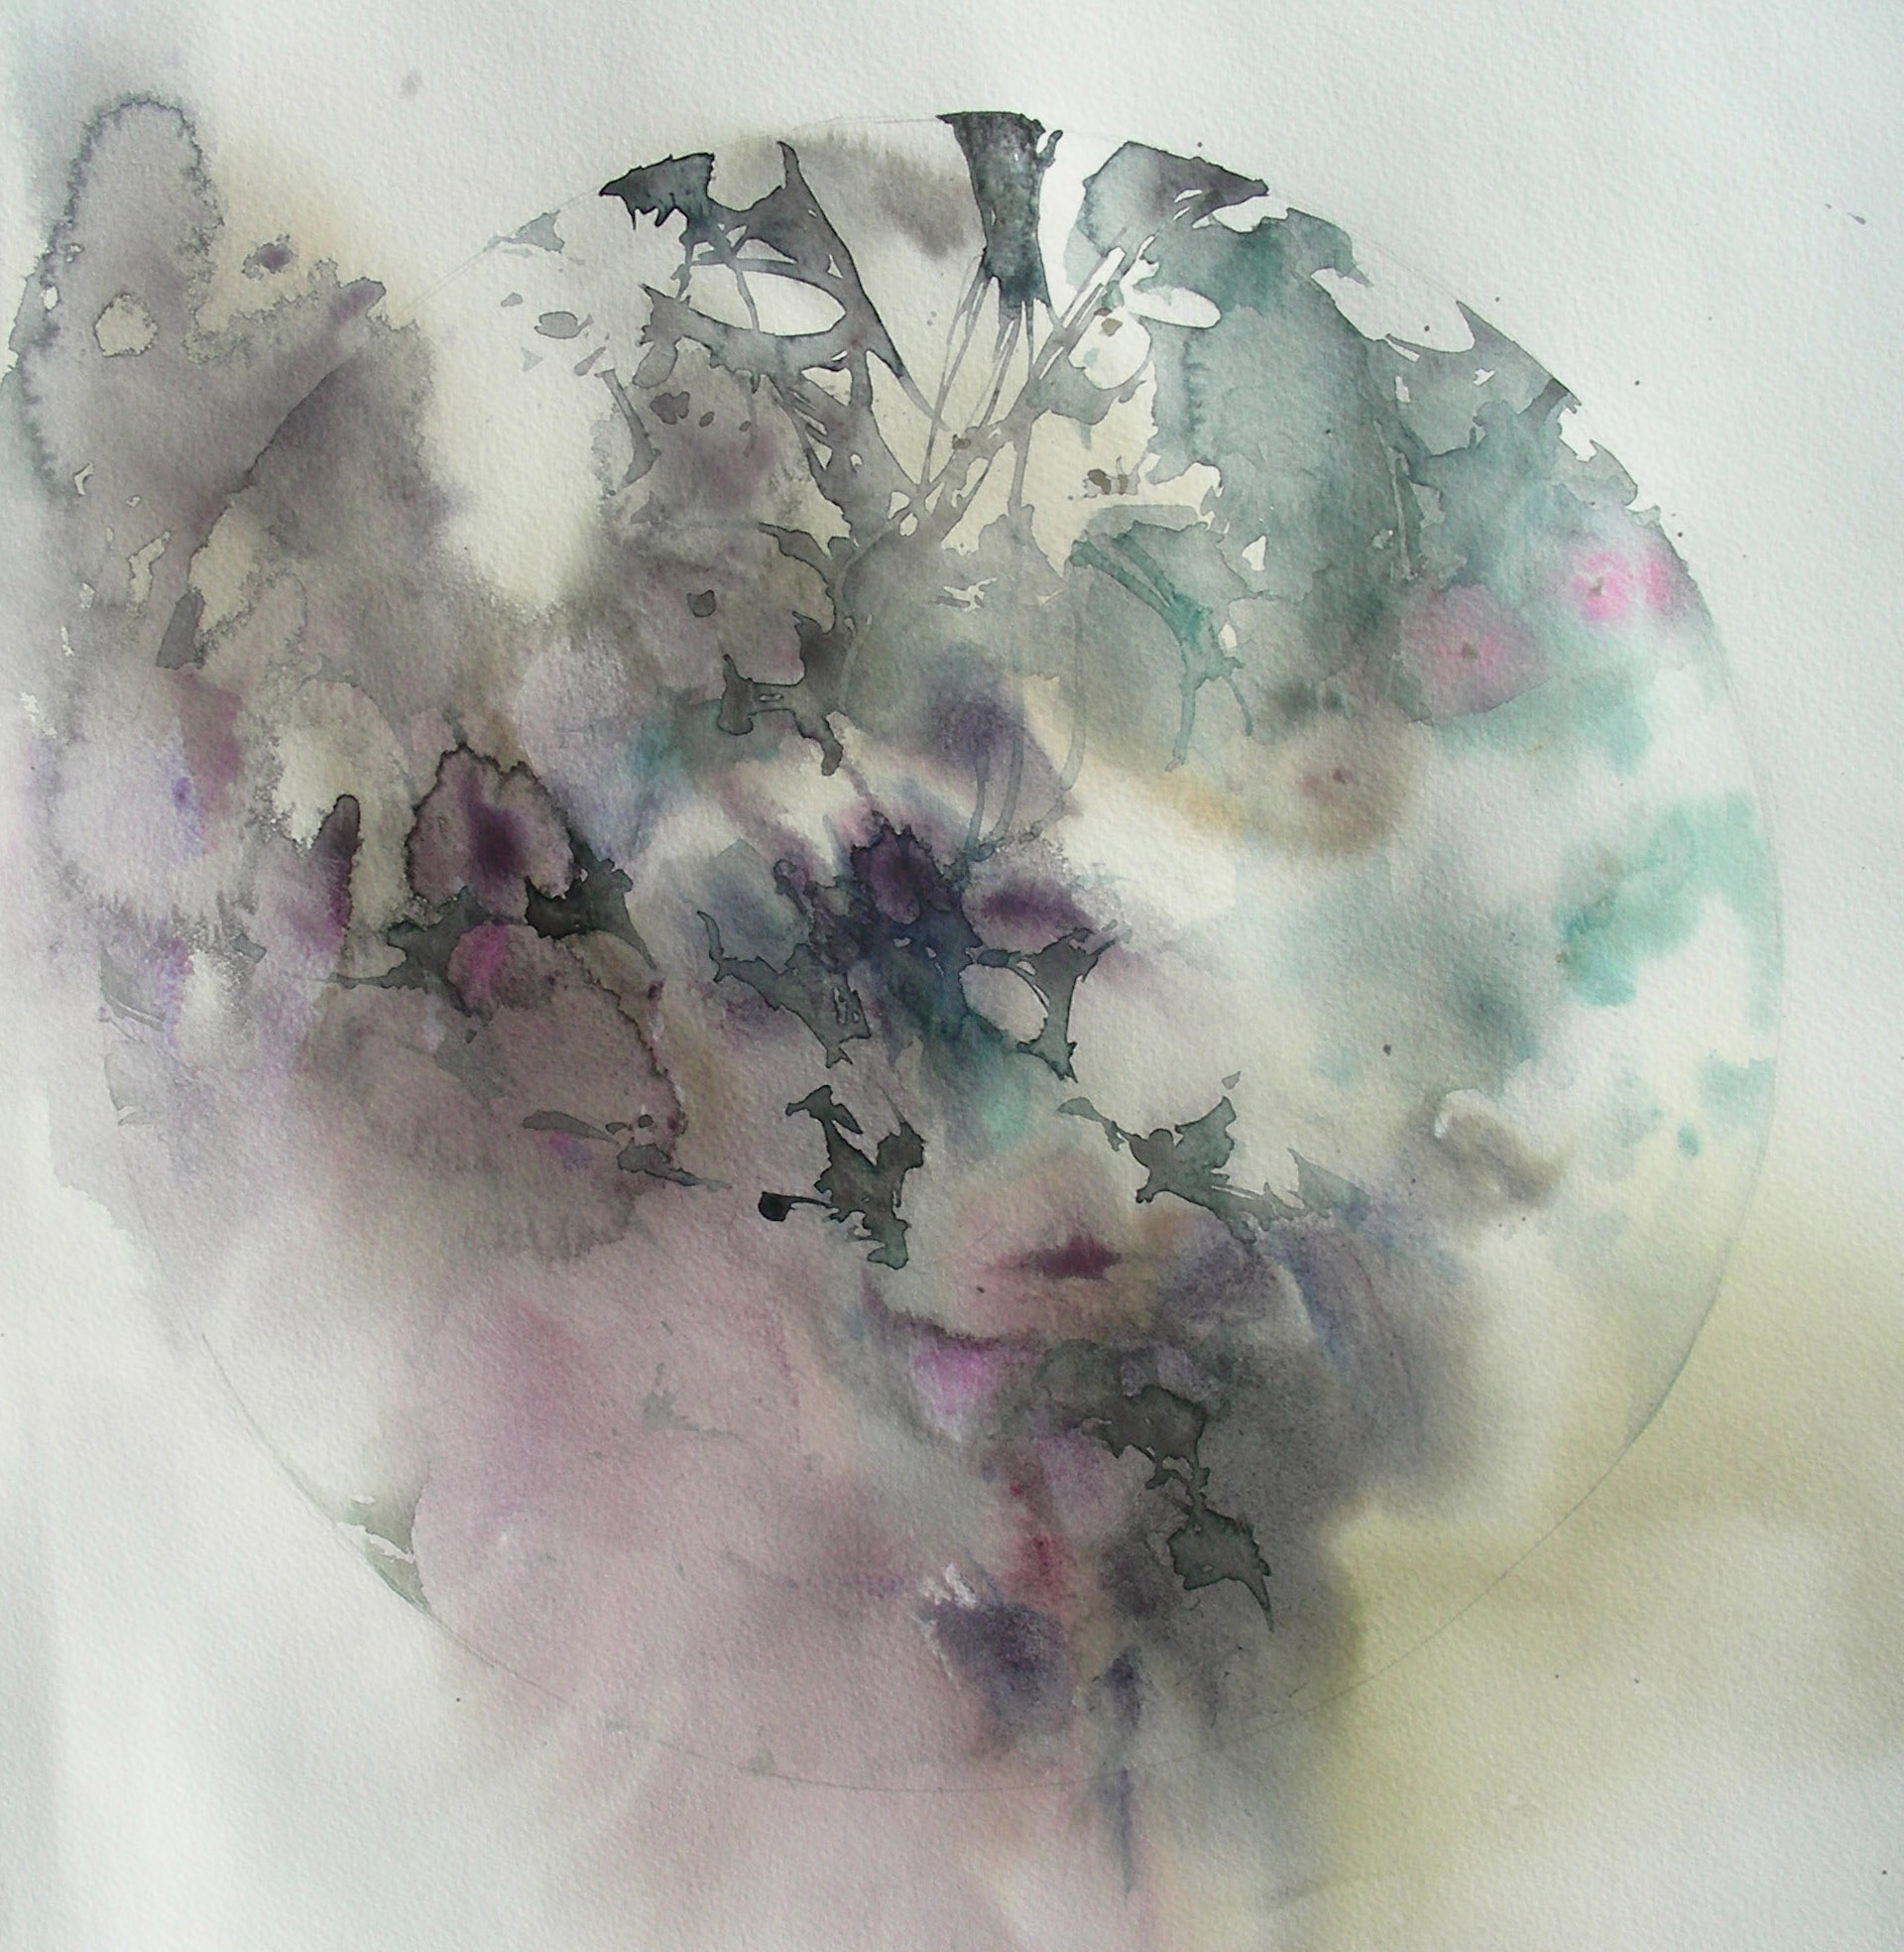 Flower dream - 50x50cm